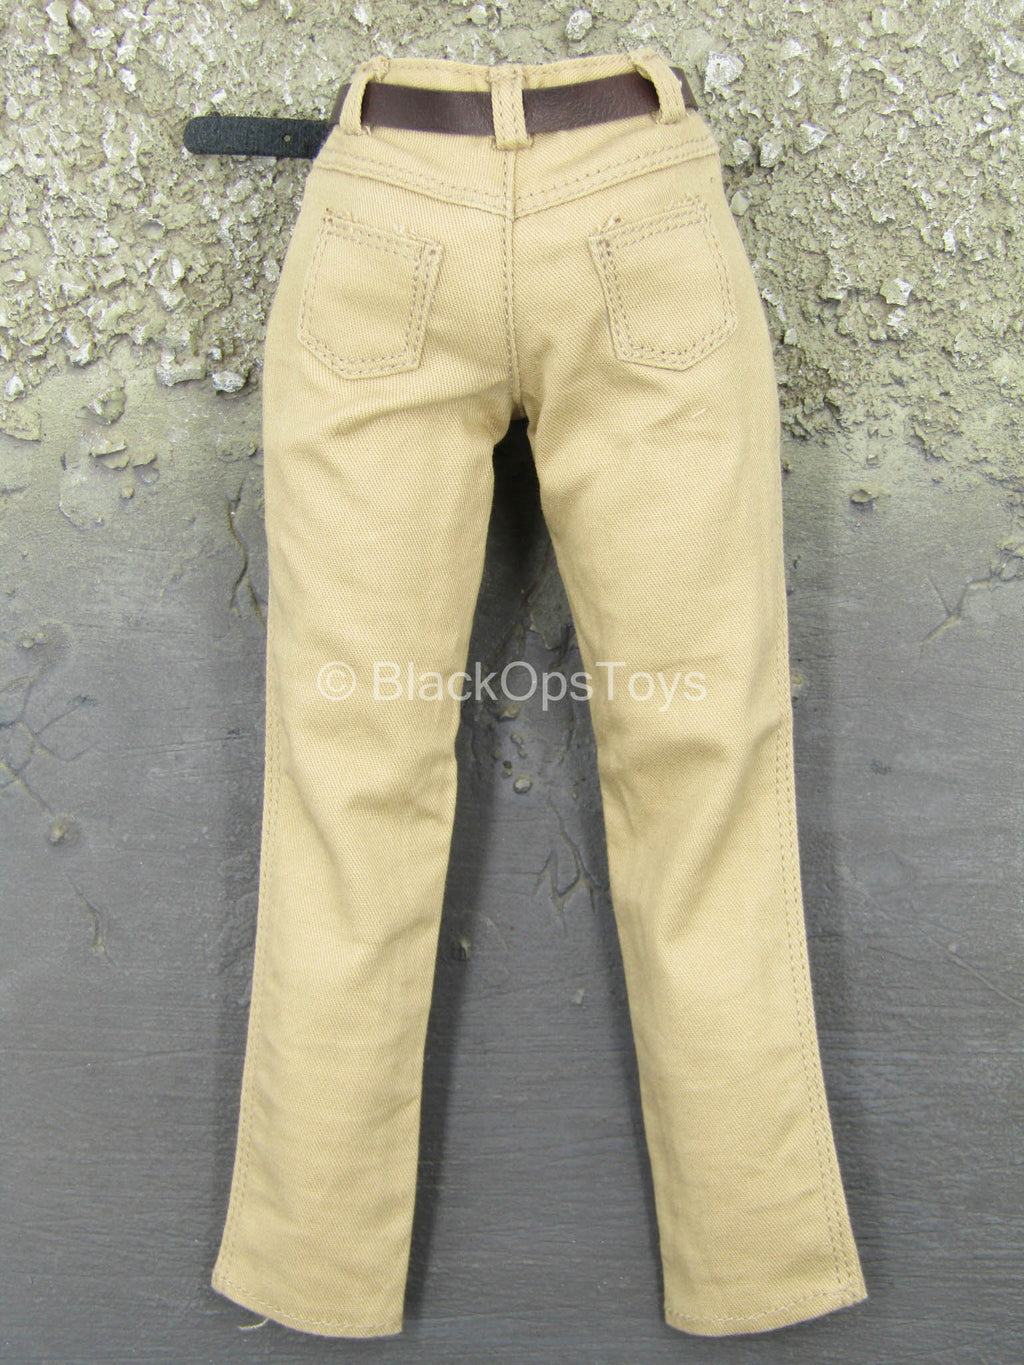 Men's Retro Leather Suit - Pants w/Leather-Like Belt